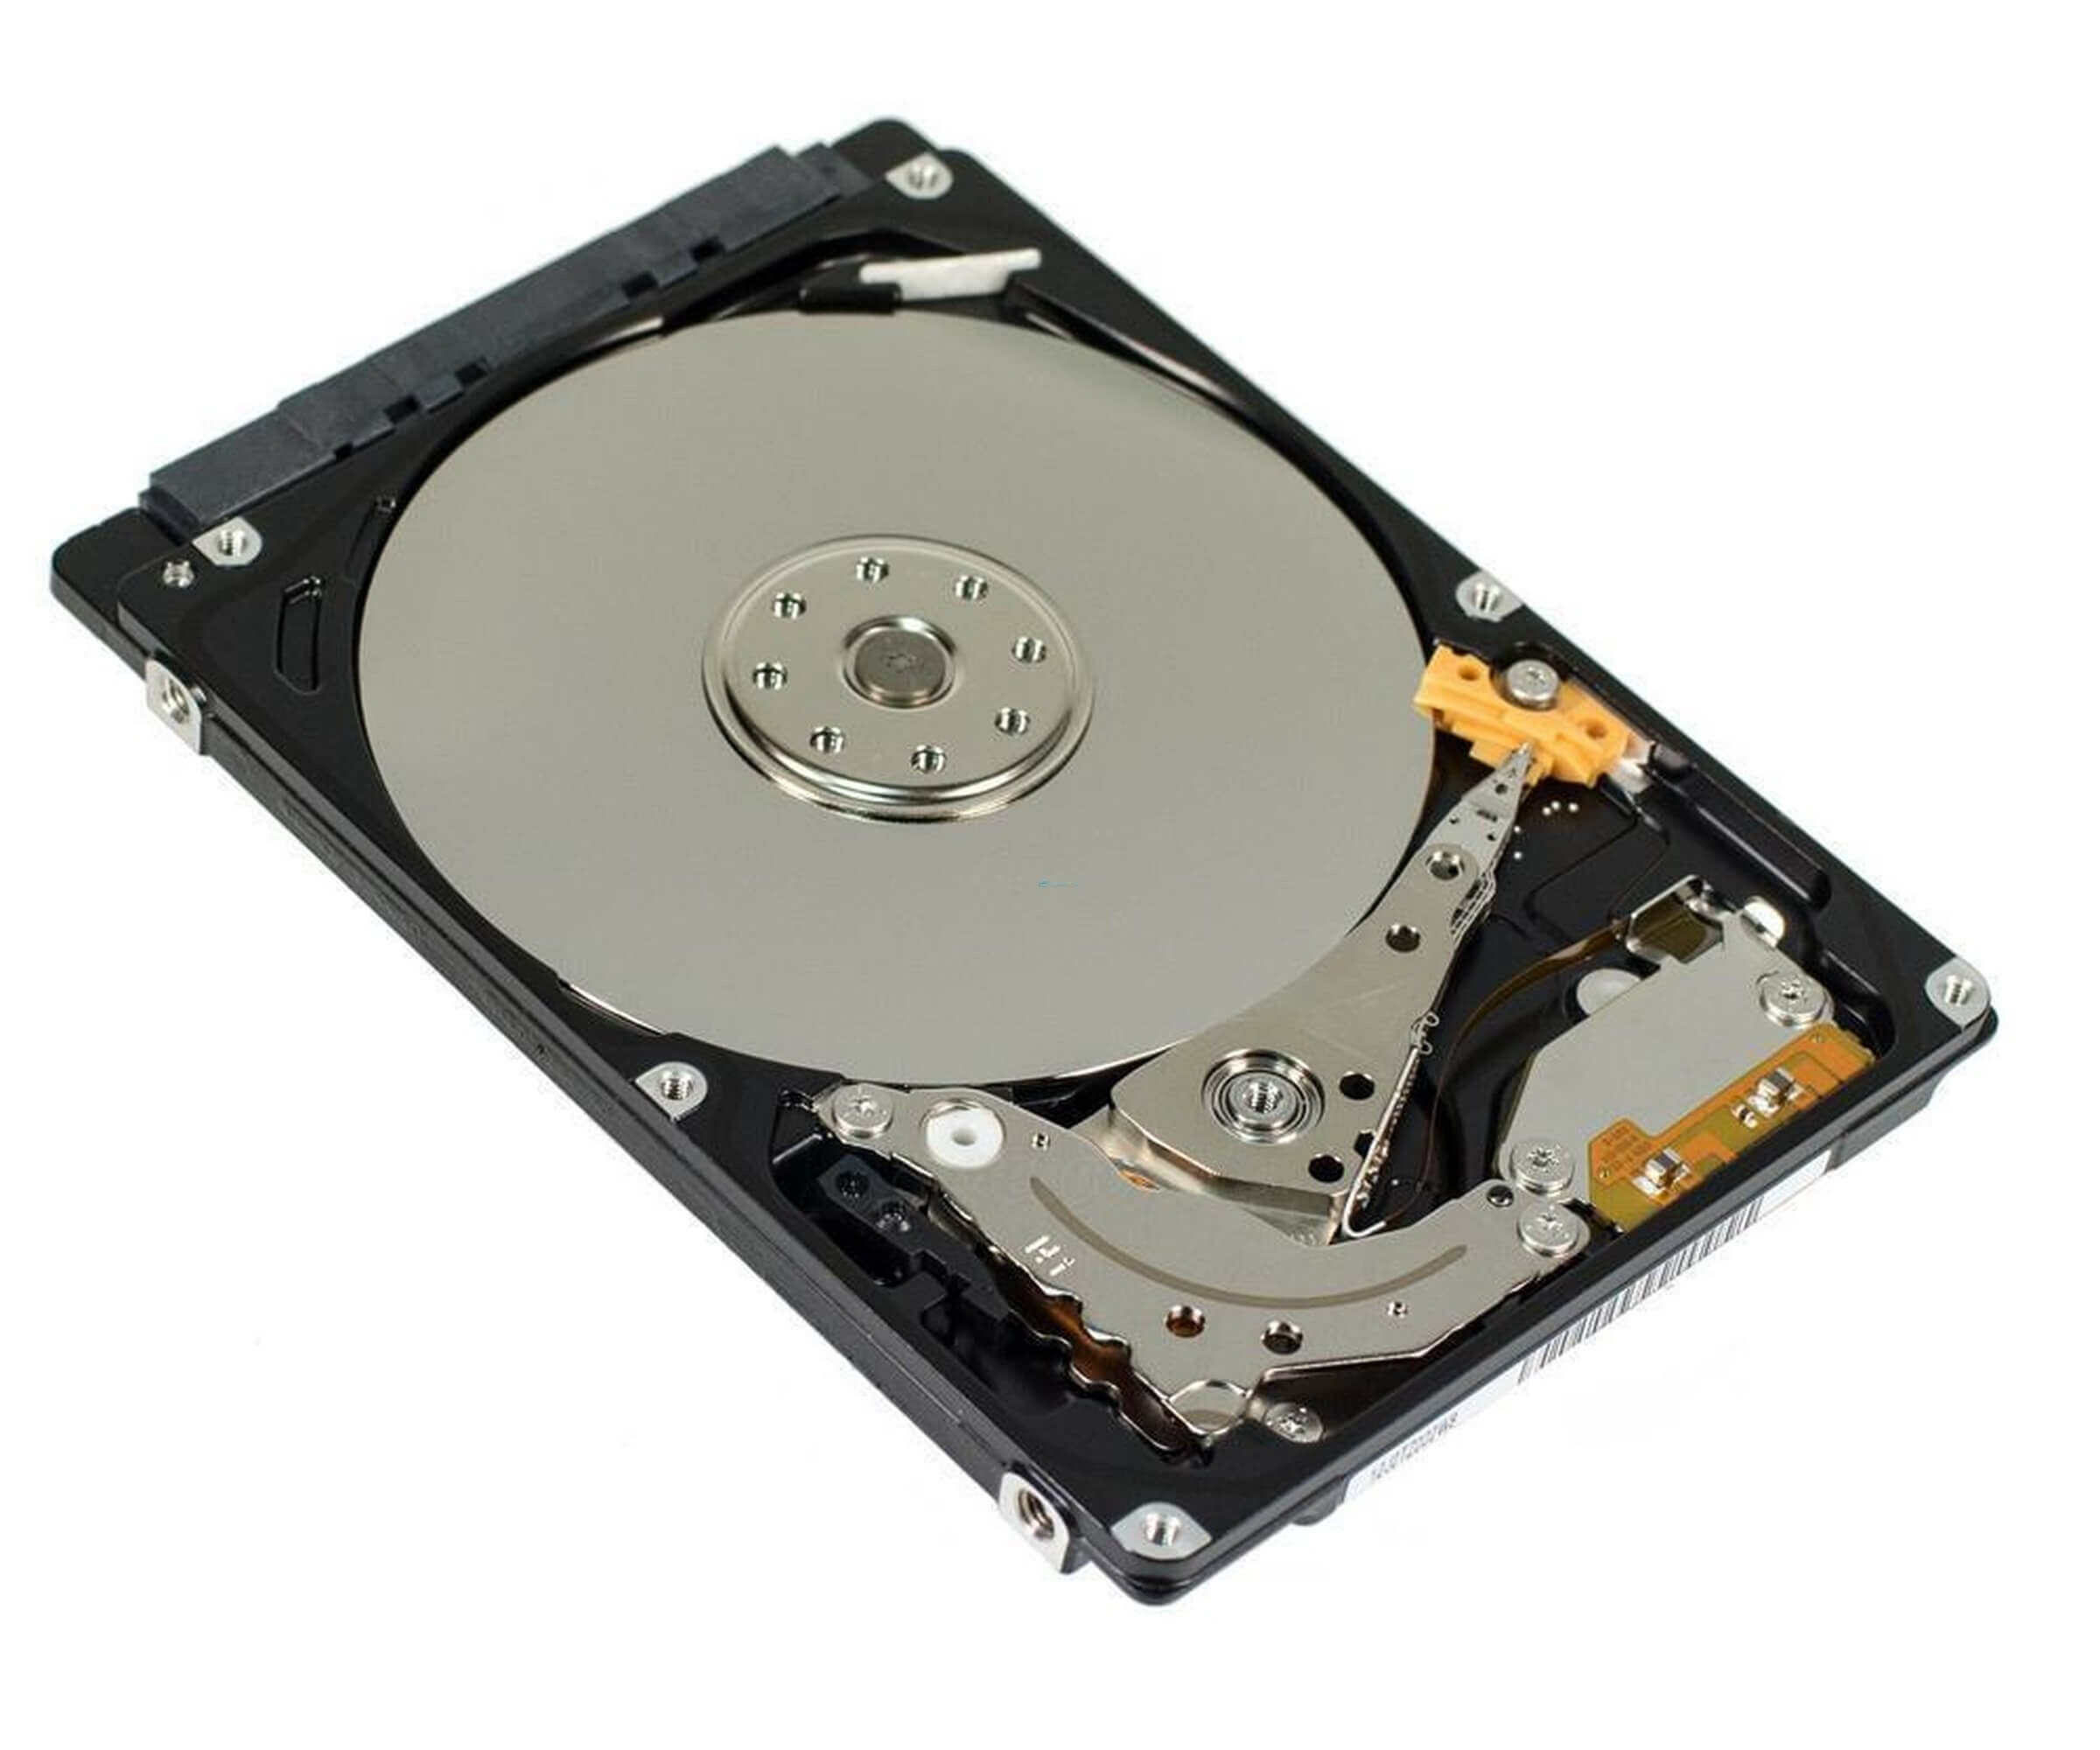 Seagate Momentus 5400.4 ST9250827AS - Festplatte - 250 GB - 5400 rpm - 2.5 - SATA